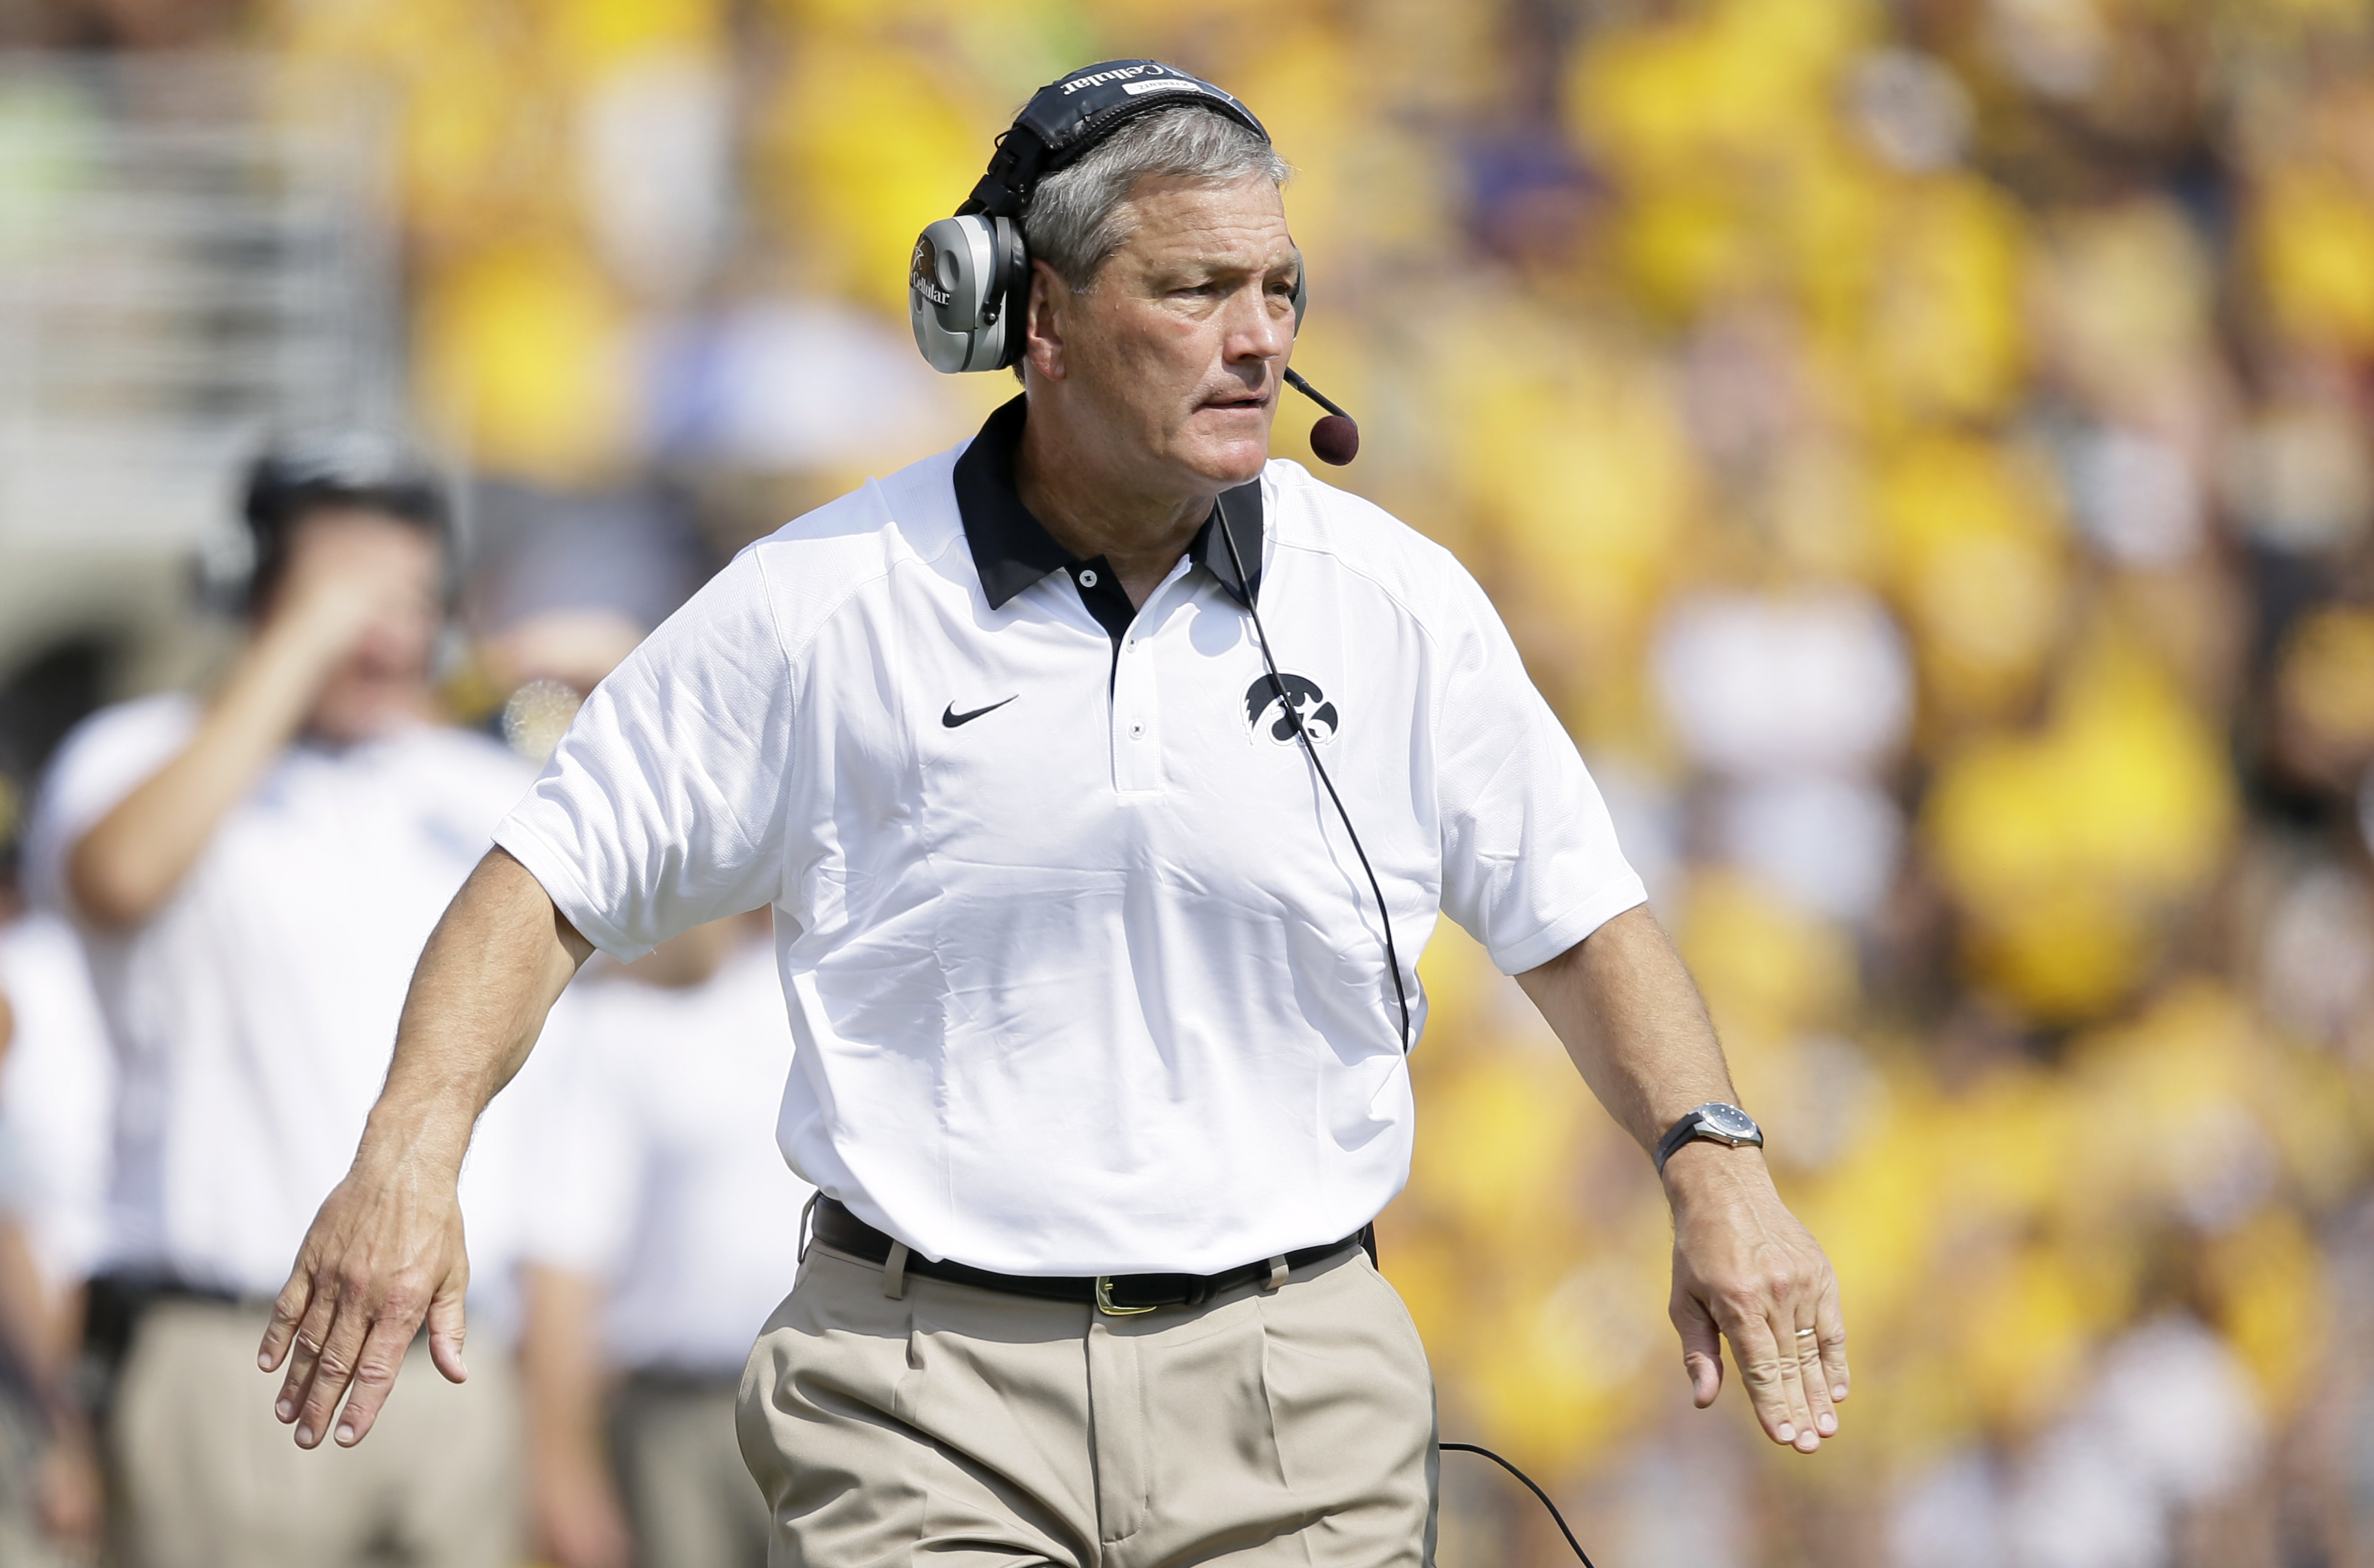 FILE - In this Sept. 5, 2015, file photo, Iowa head coach Kirk Ferentz reacts on the sidelines during the first half of an NCAA college football game against Illinois State, in Iowa City, Iowa. Ferentz, who'll finish his 17th season as Iowa's head coach i